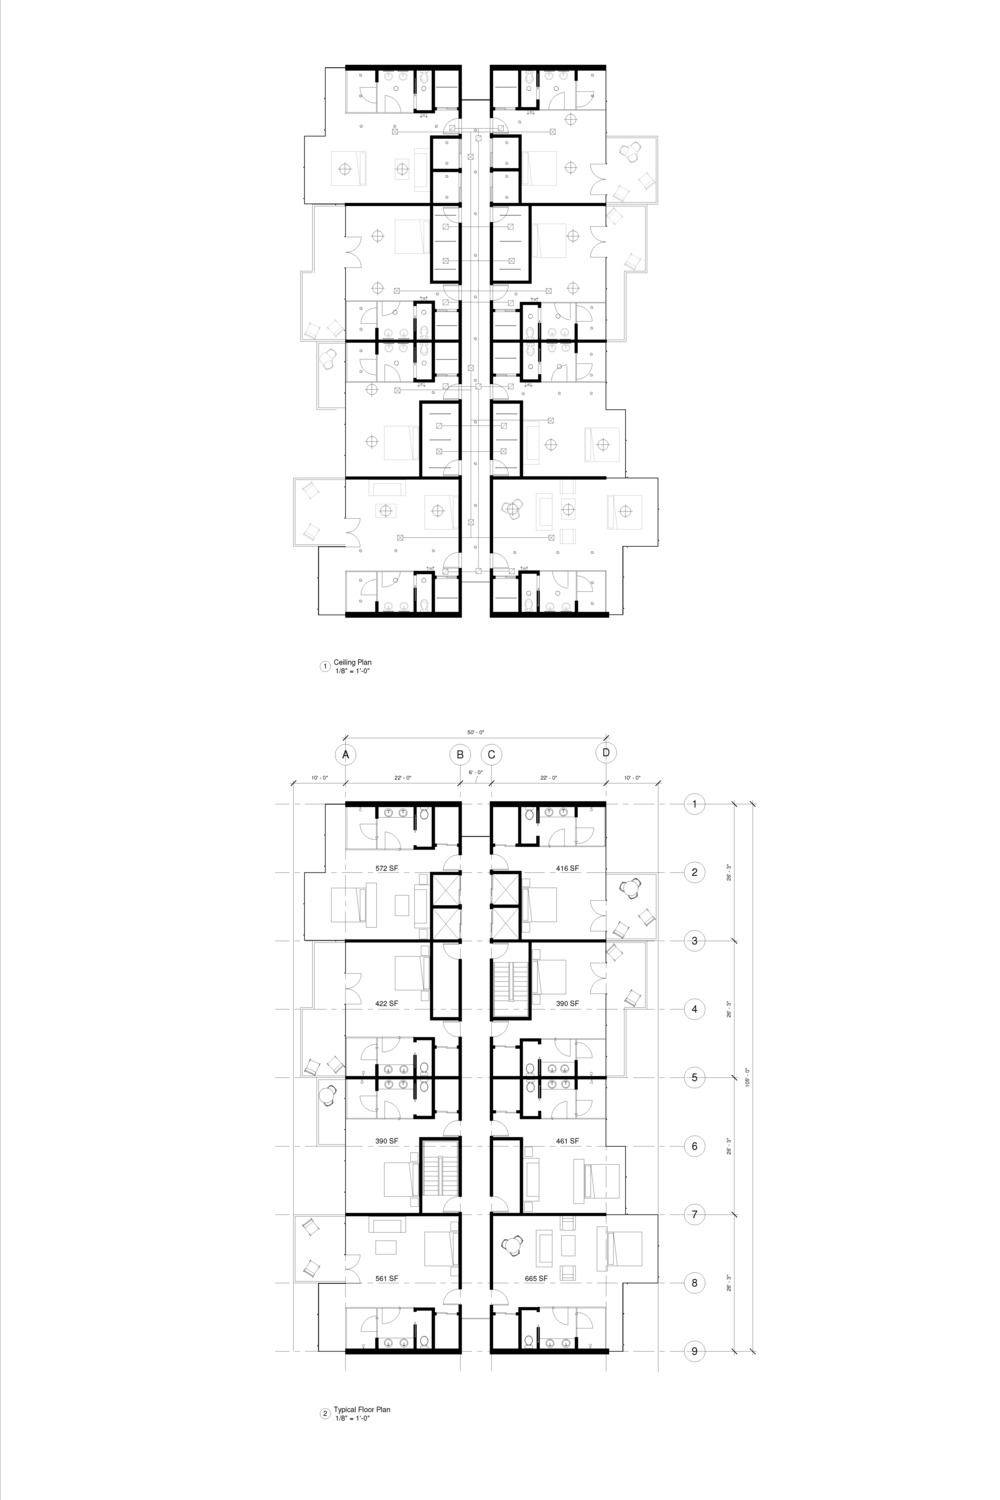 Hotel Floor Layout A&B.jpg